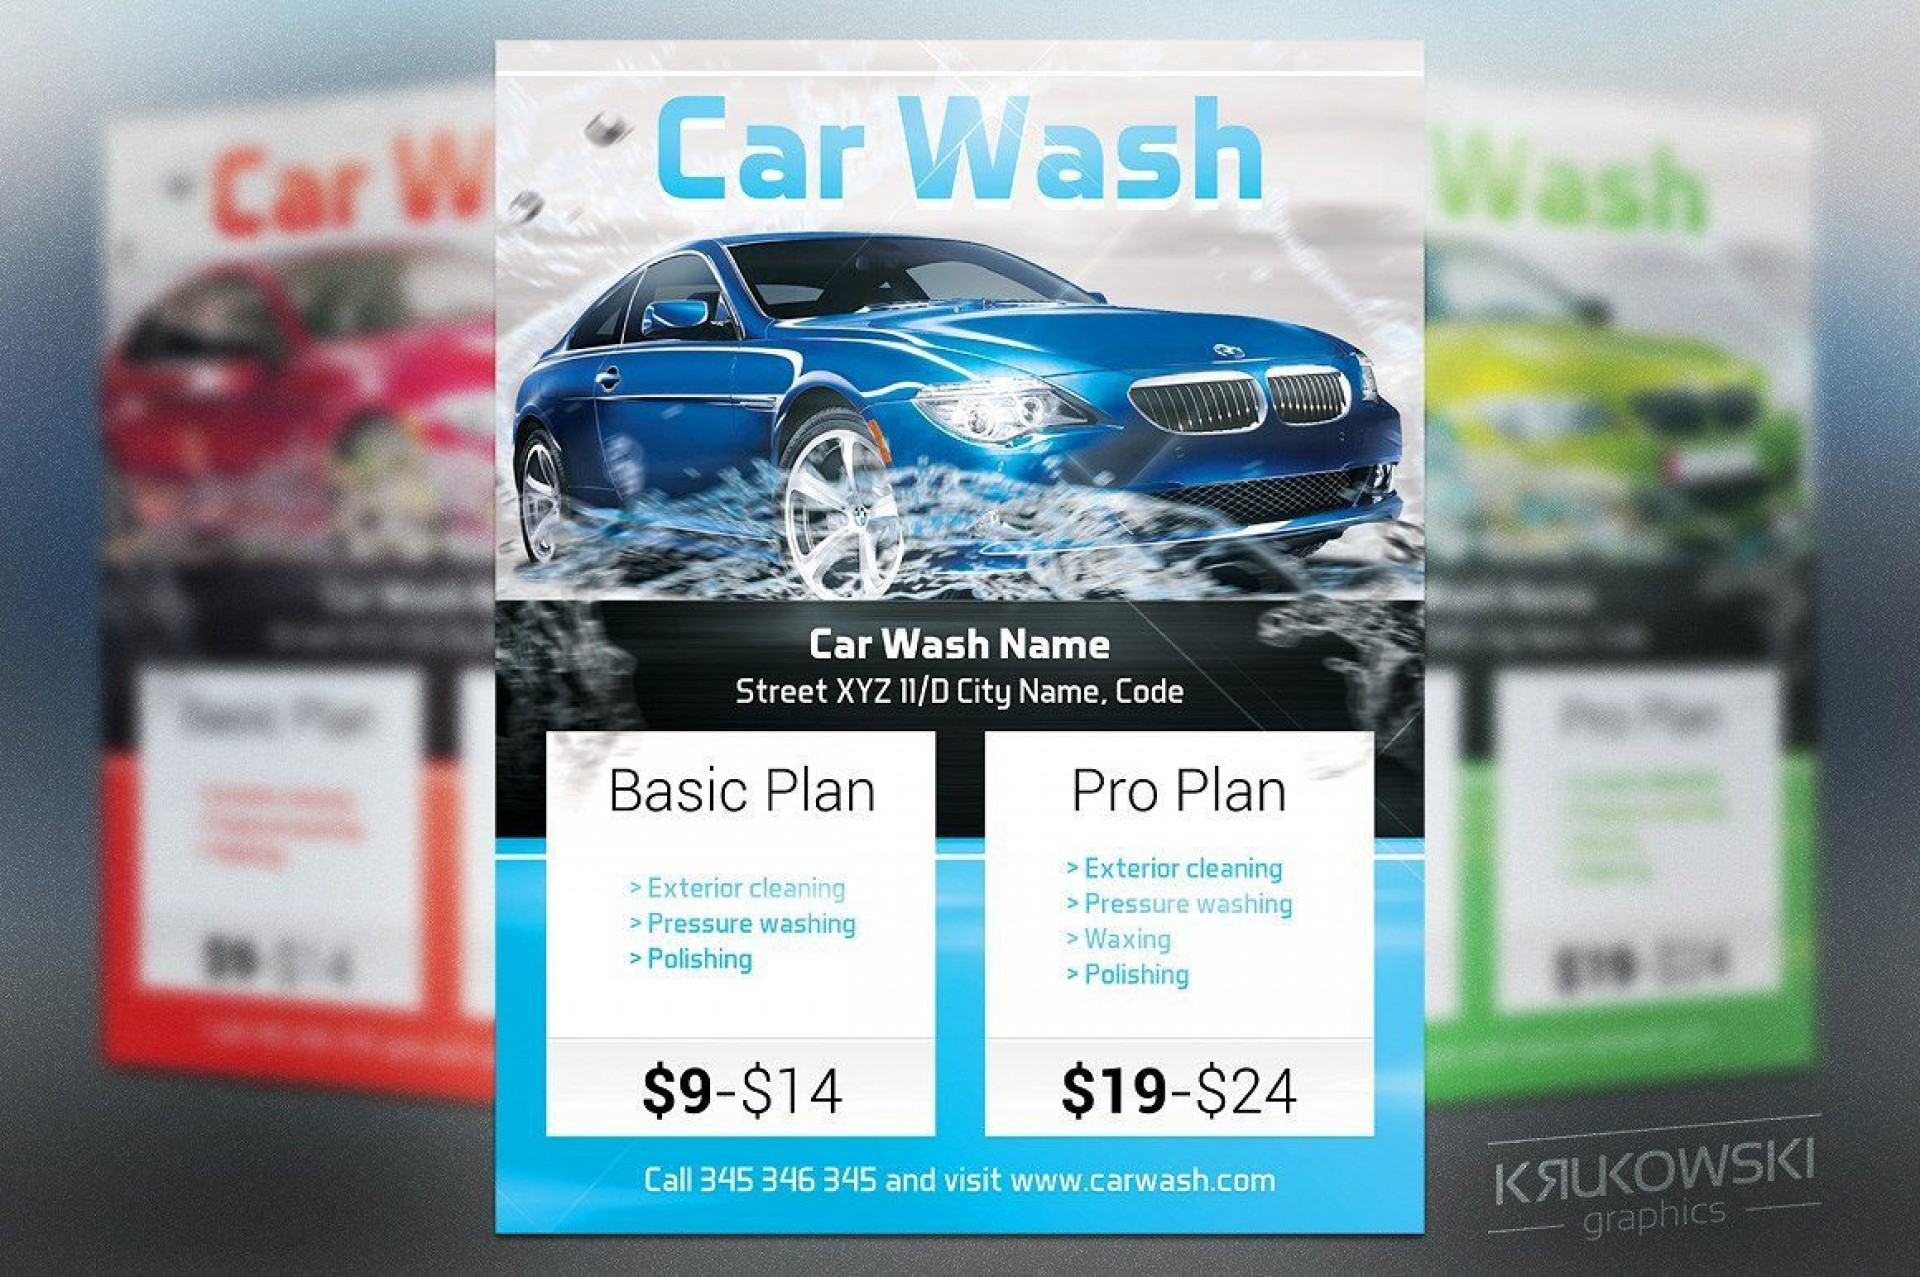 004 Excellent Car Wash Flyer Template High Def  Free Fundraiser Download1920